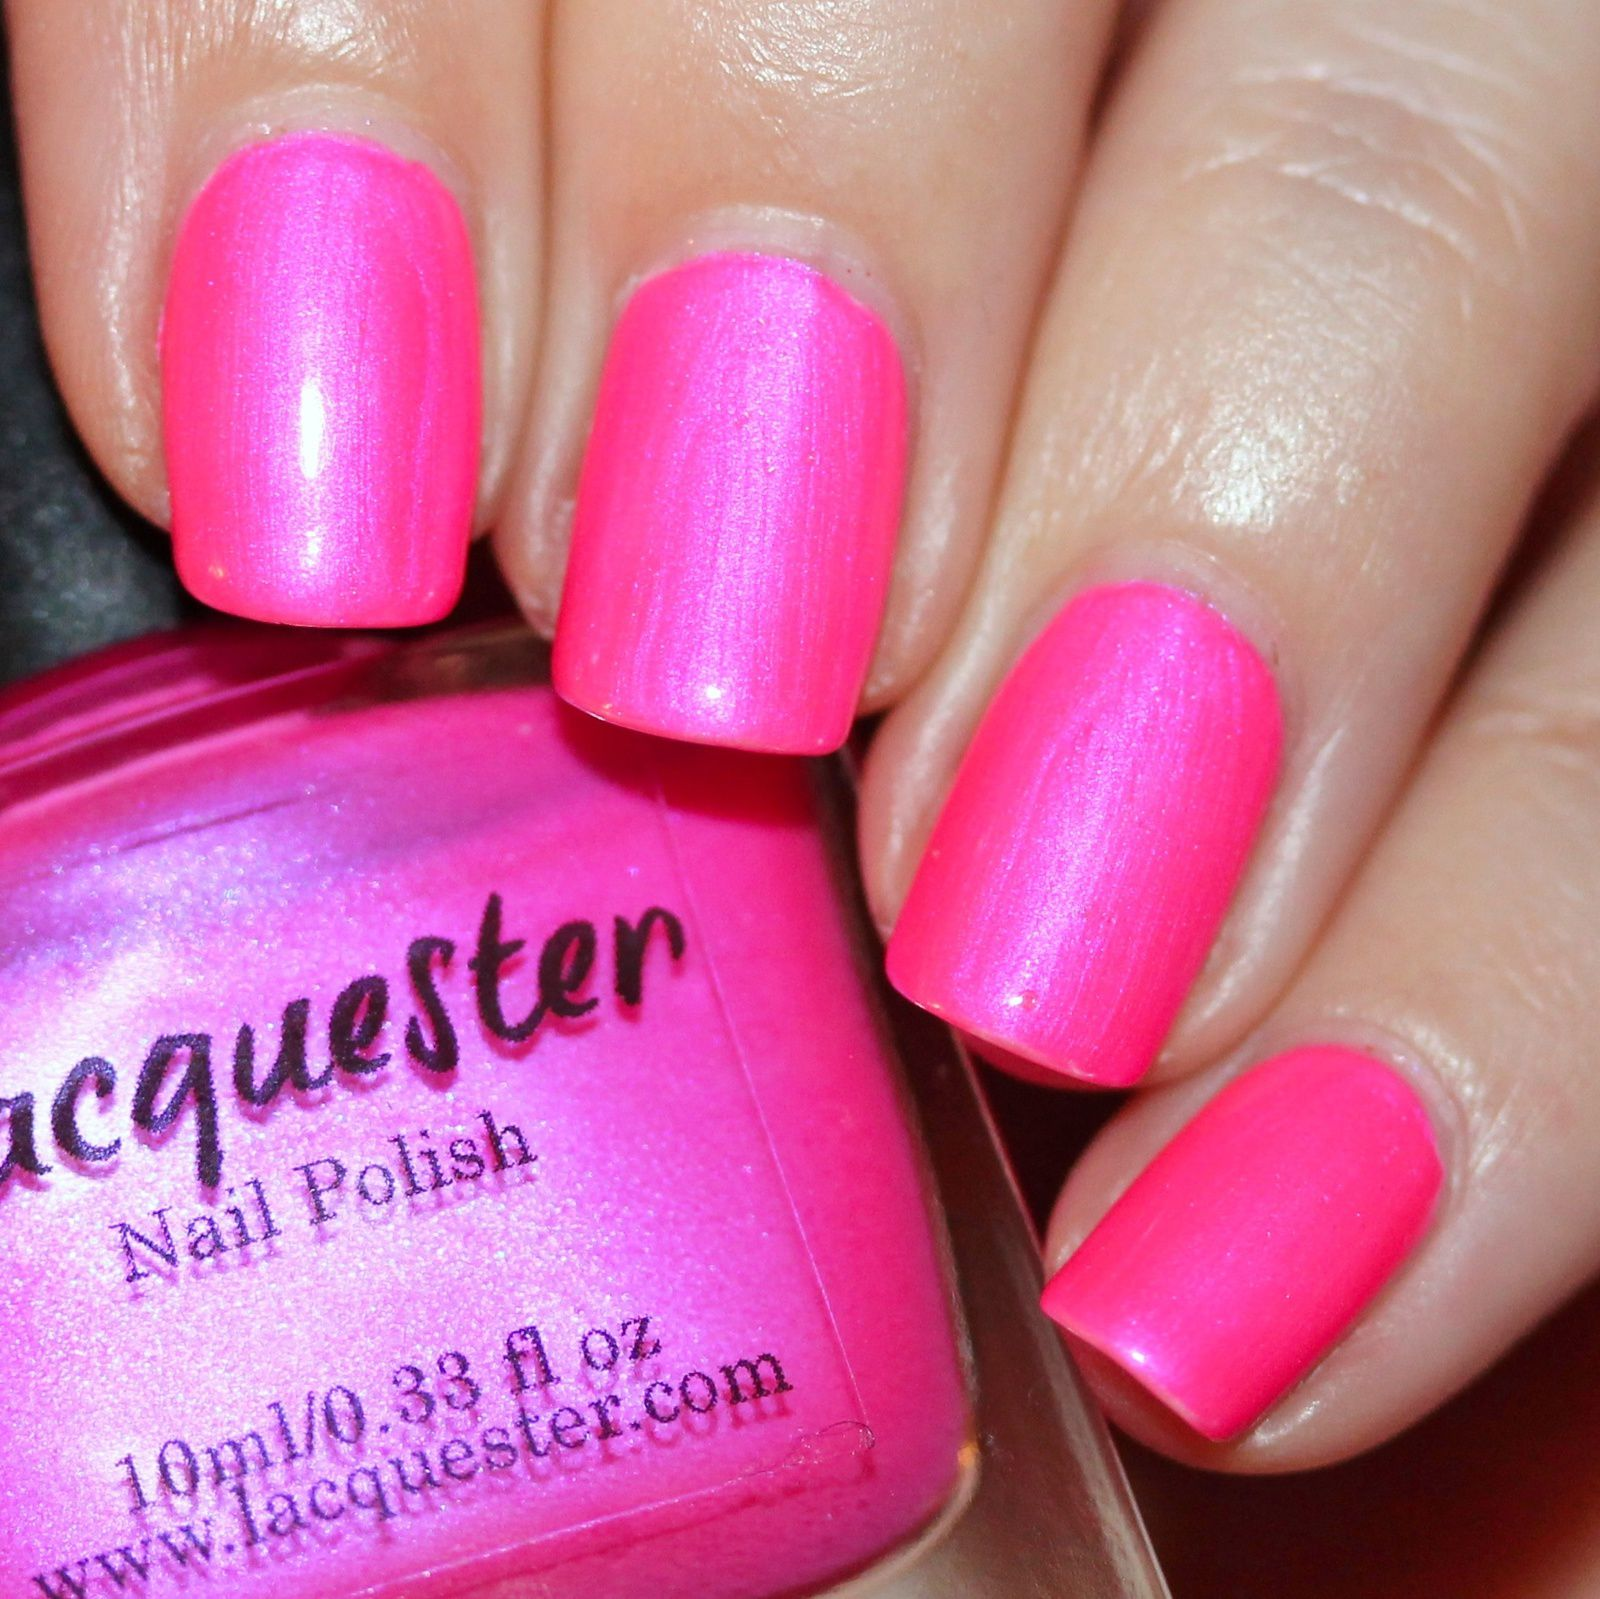 Sally Hansen Complete Care 4-in-1 Extra Moisturizing Nail Treatment / Dr. Pierre Ricaud Whitening Corrector / Lacquester Rosington / HK Girl Top Coat